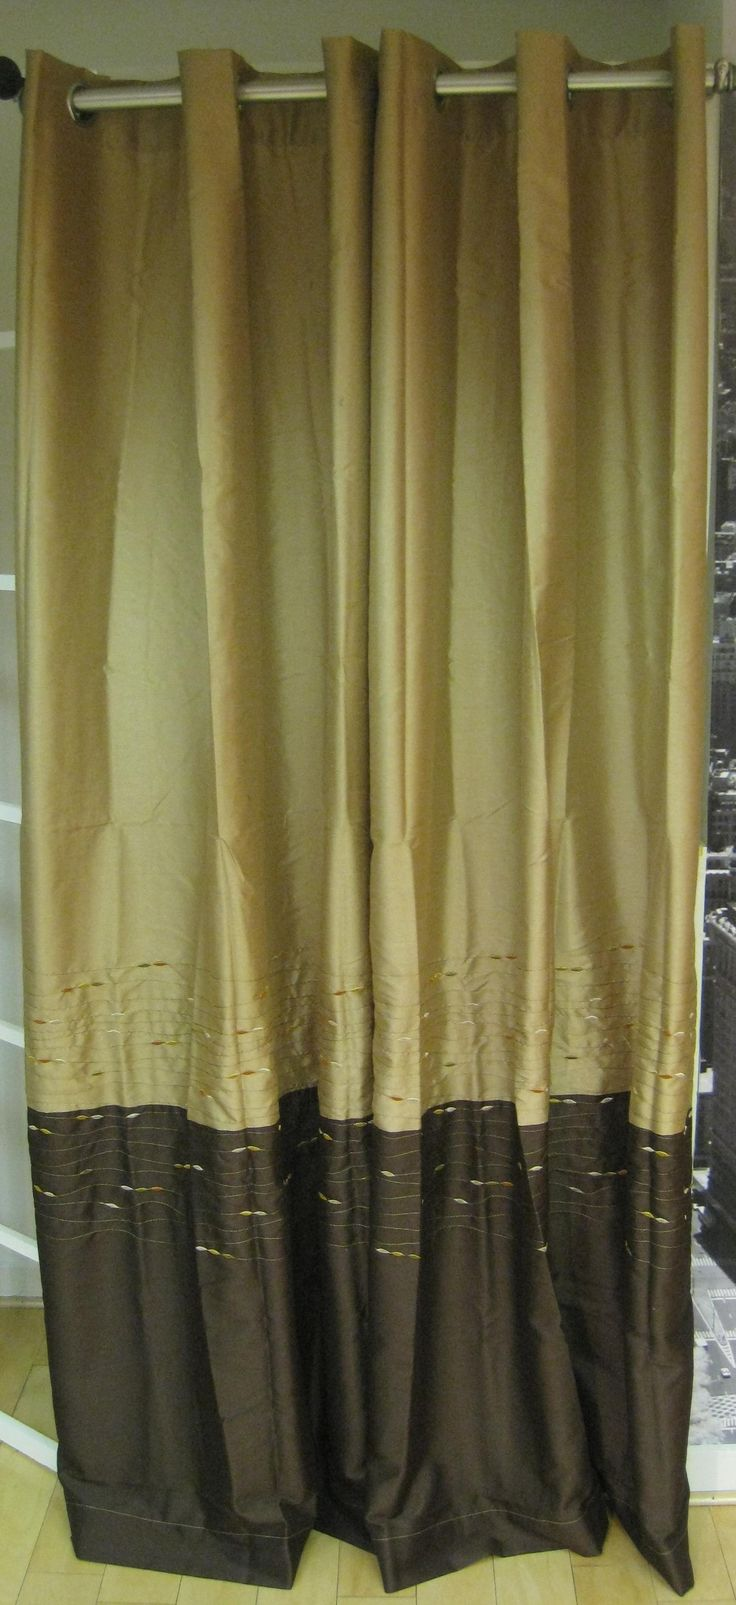 Curtain pair overstock shopping great deals on lights out curtains - Horizon Embroidered Grommet 95 Inch Curtain Panel Grommet Curtainscurtain Panels